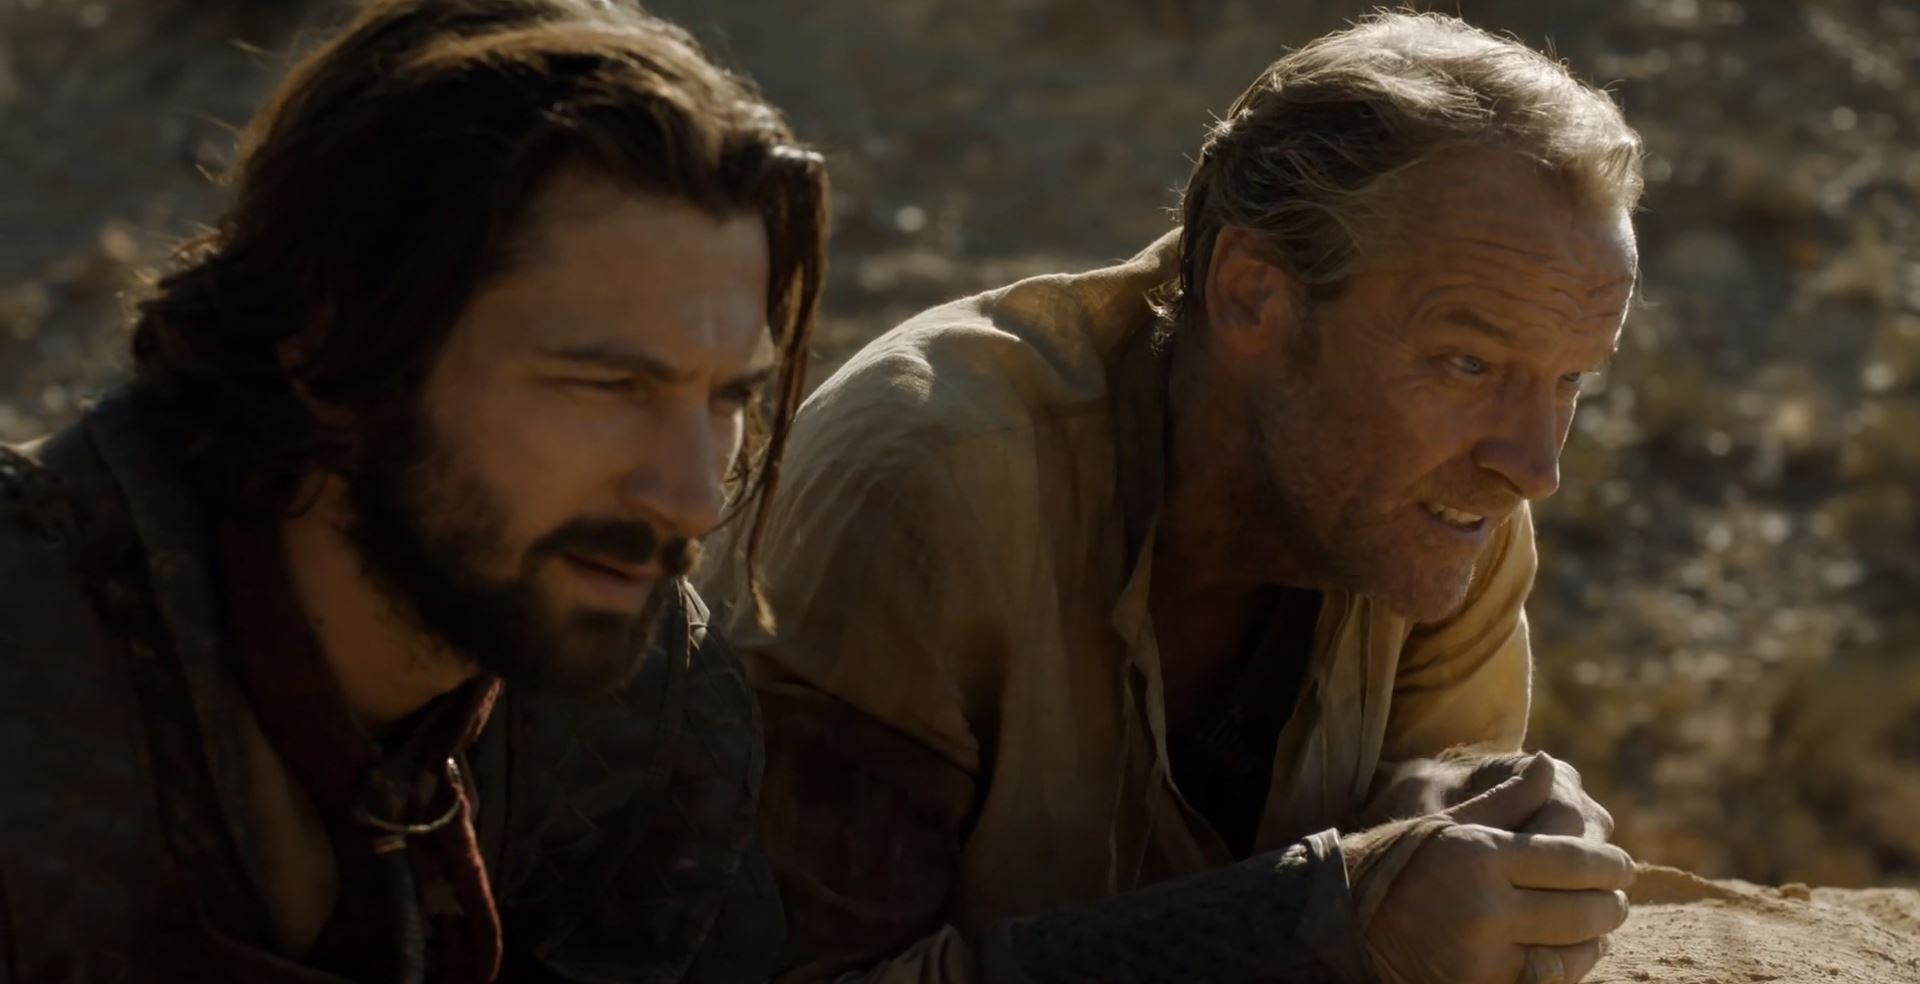 Daario and Jorah plan to rescue Daenerys. Game Of Thrones S6Ep4 Book of the Stranger Review